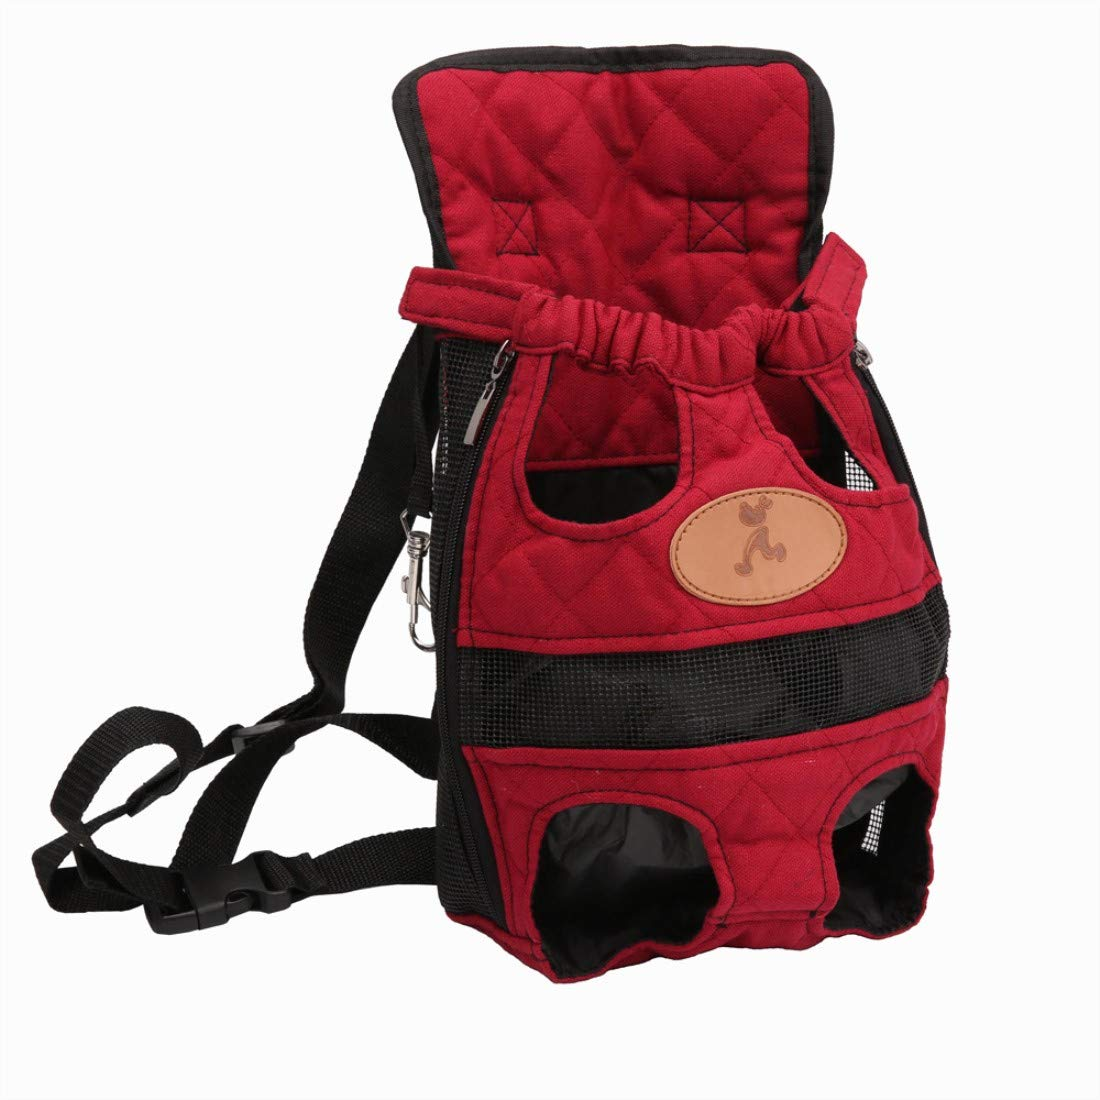 Red Medium Red Medium Pet Out Transport Backpack, Cat\Dog's Travel Backpack, Easy to Use, Soft and Comfortable Mesh Ventilation,Red,M